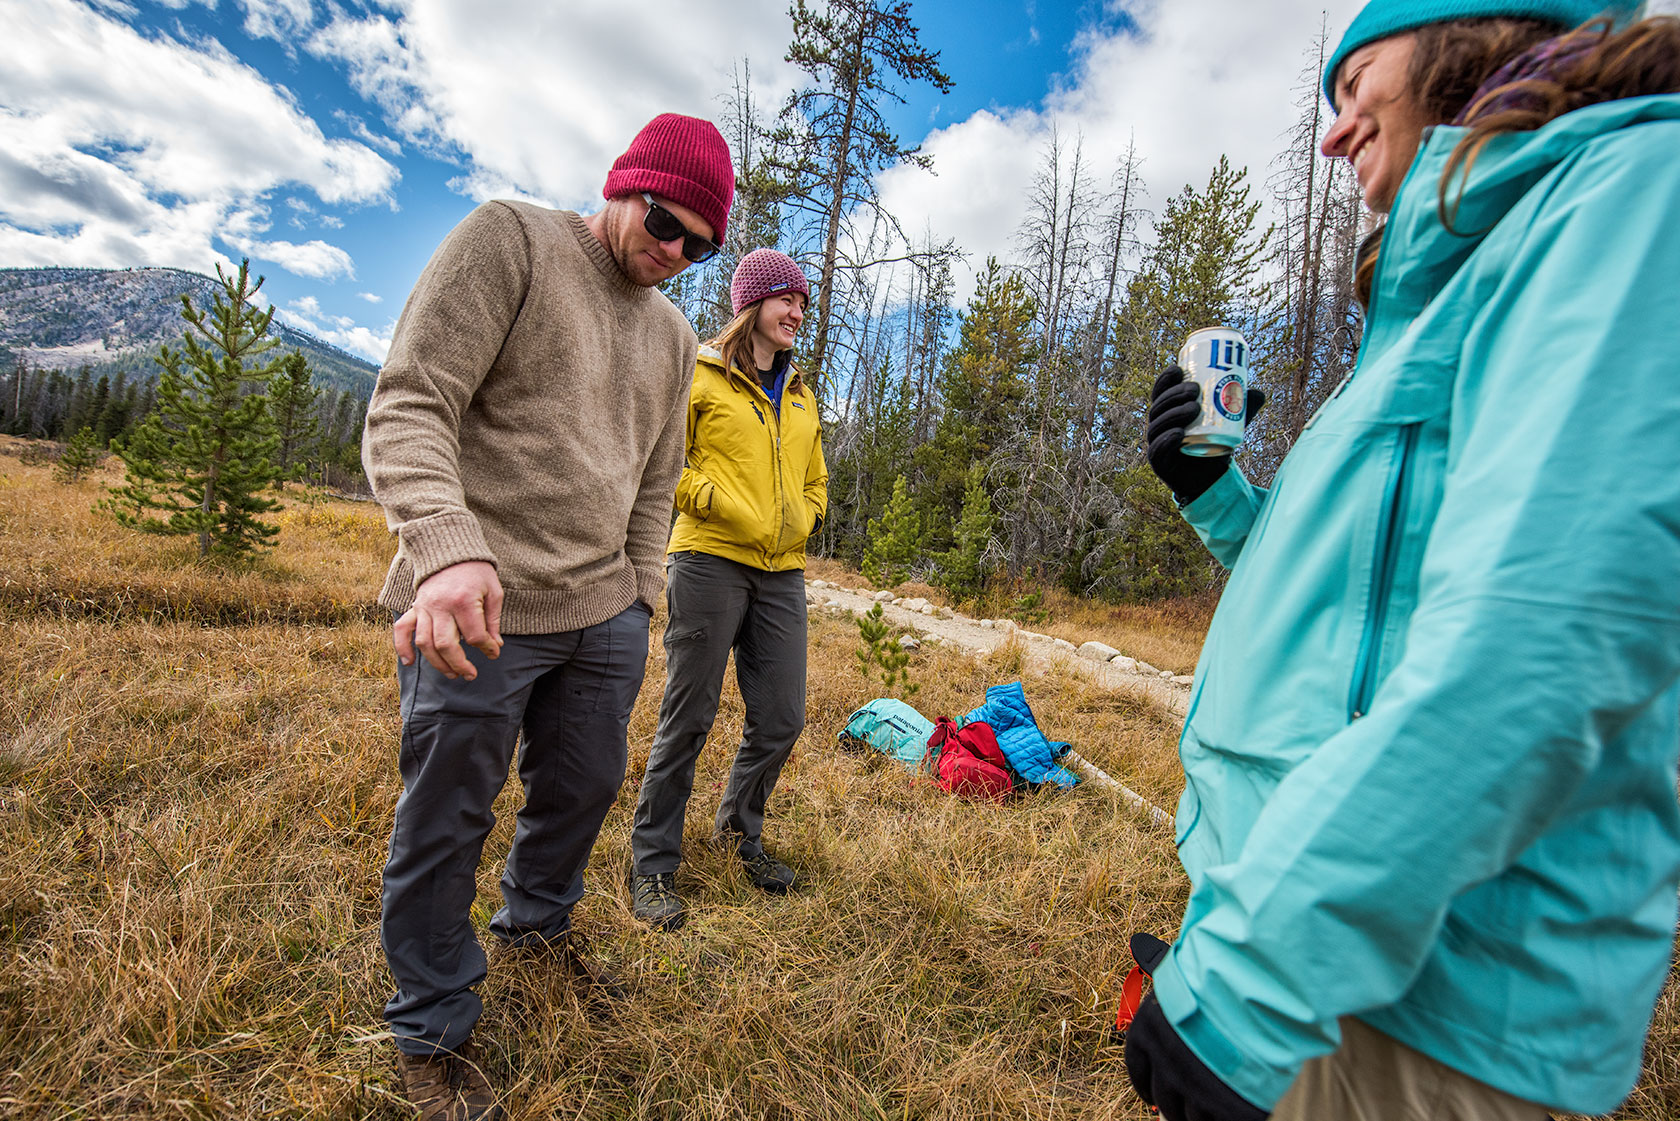 austin-trigg-patagonia-sawtooth-hiking-meadow-friends-advenure-wilderness-forest-idaho-outside-lifestyle-day-fall-weather-mountains-stanley-lake.jpg